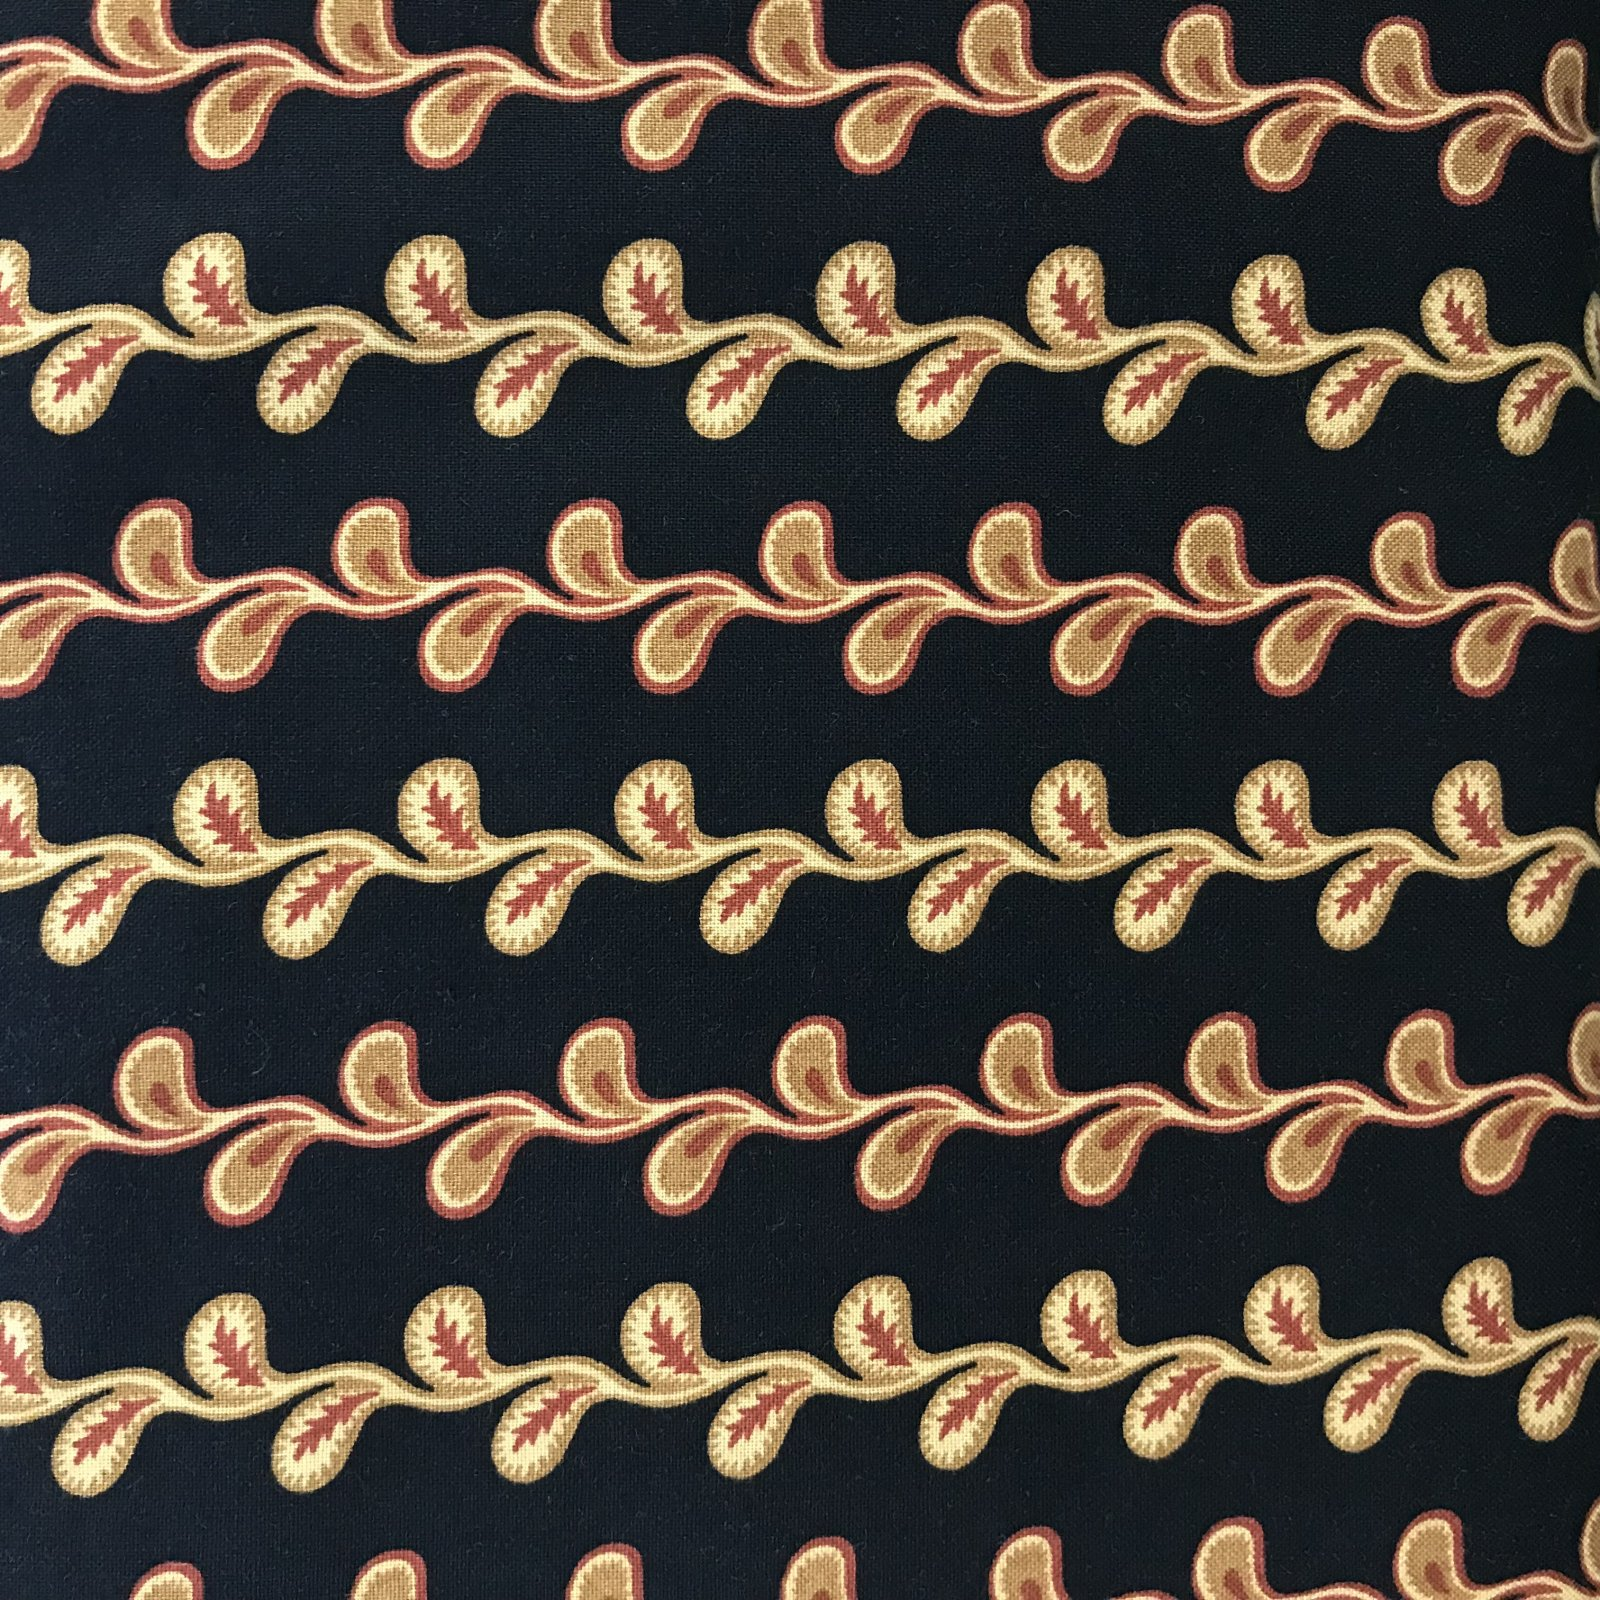 Annandale by Andover Fabrics 5091 BLACK